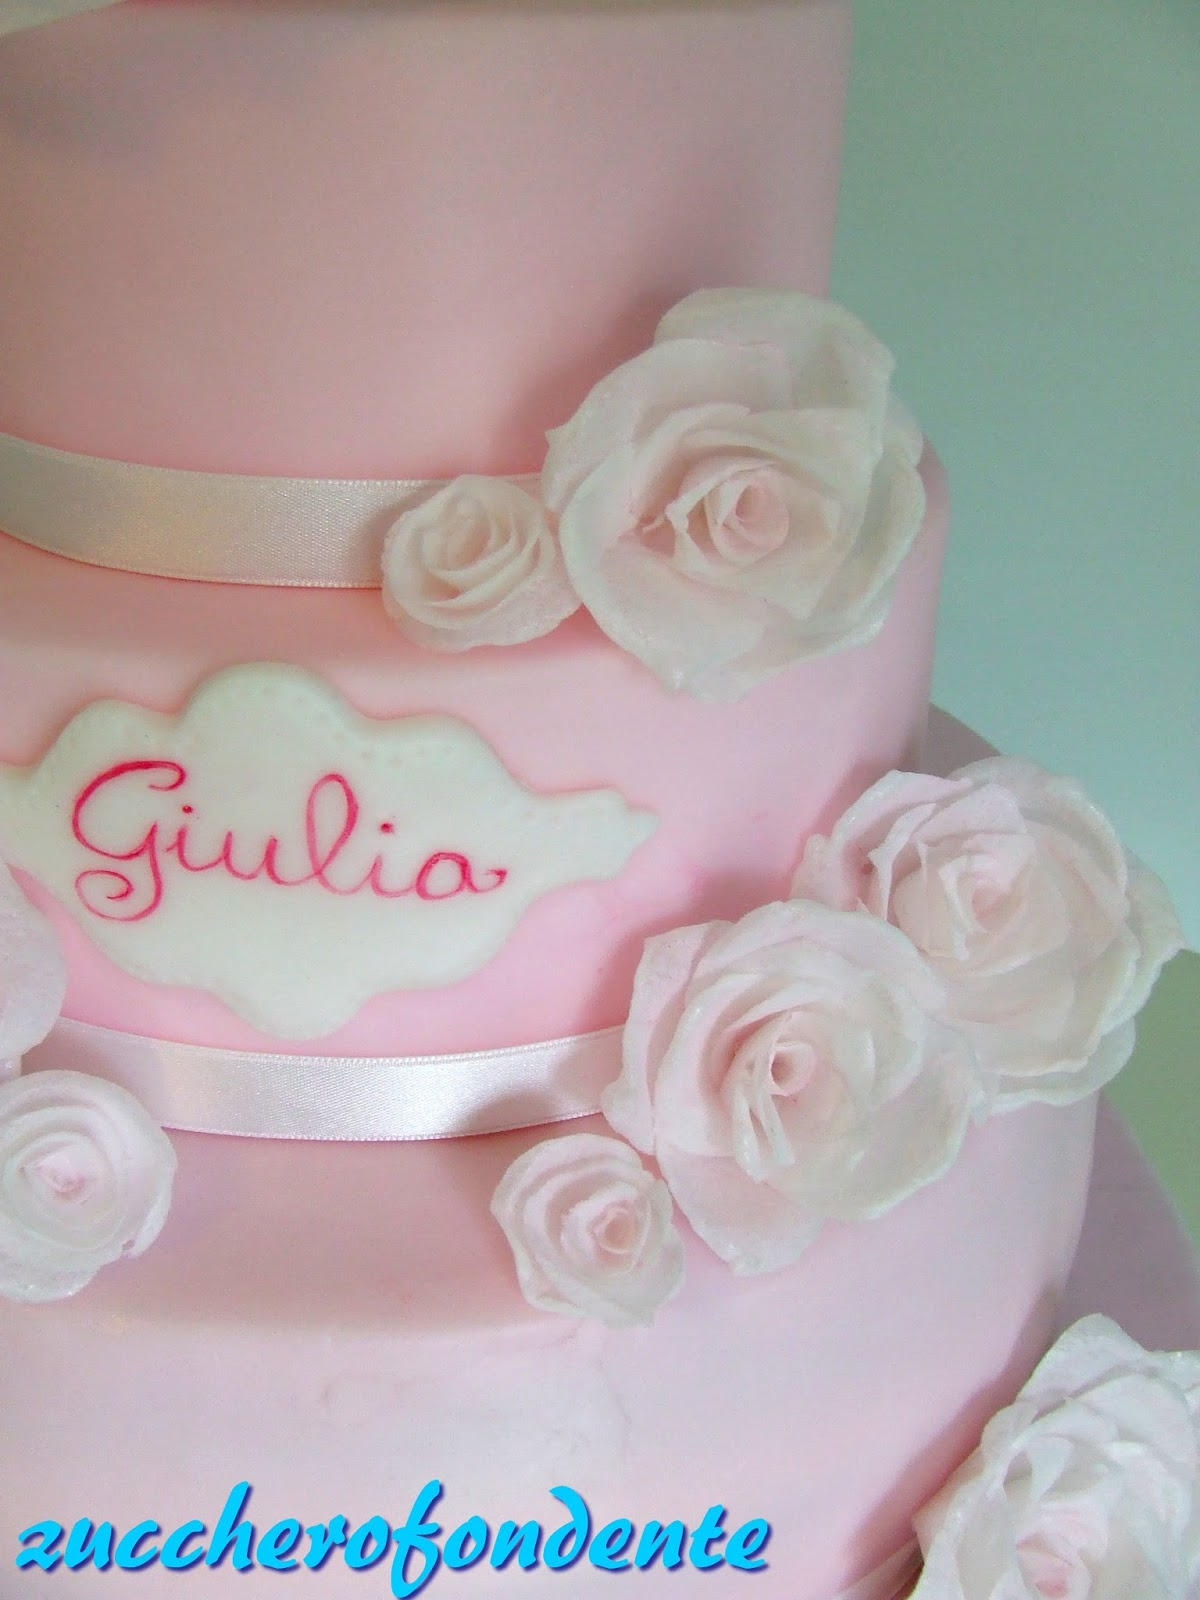 Zuccherofondente torta battesimo con rose in wafer paper - Decorazioni per battesimo bimba ...